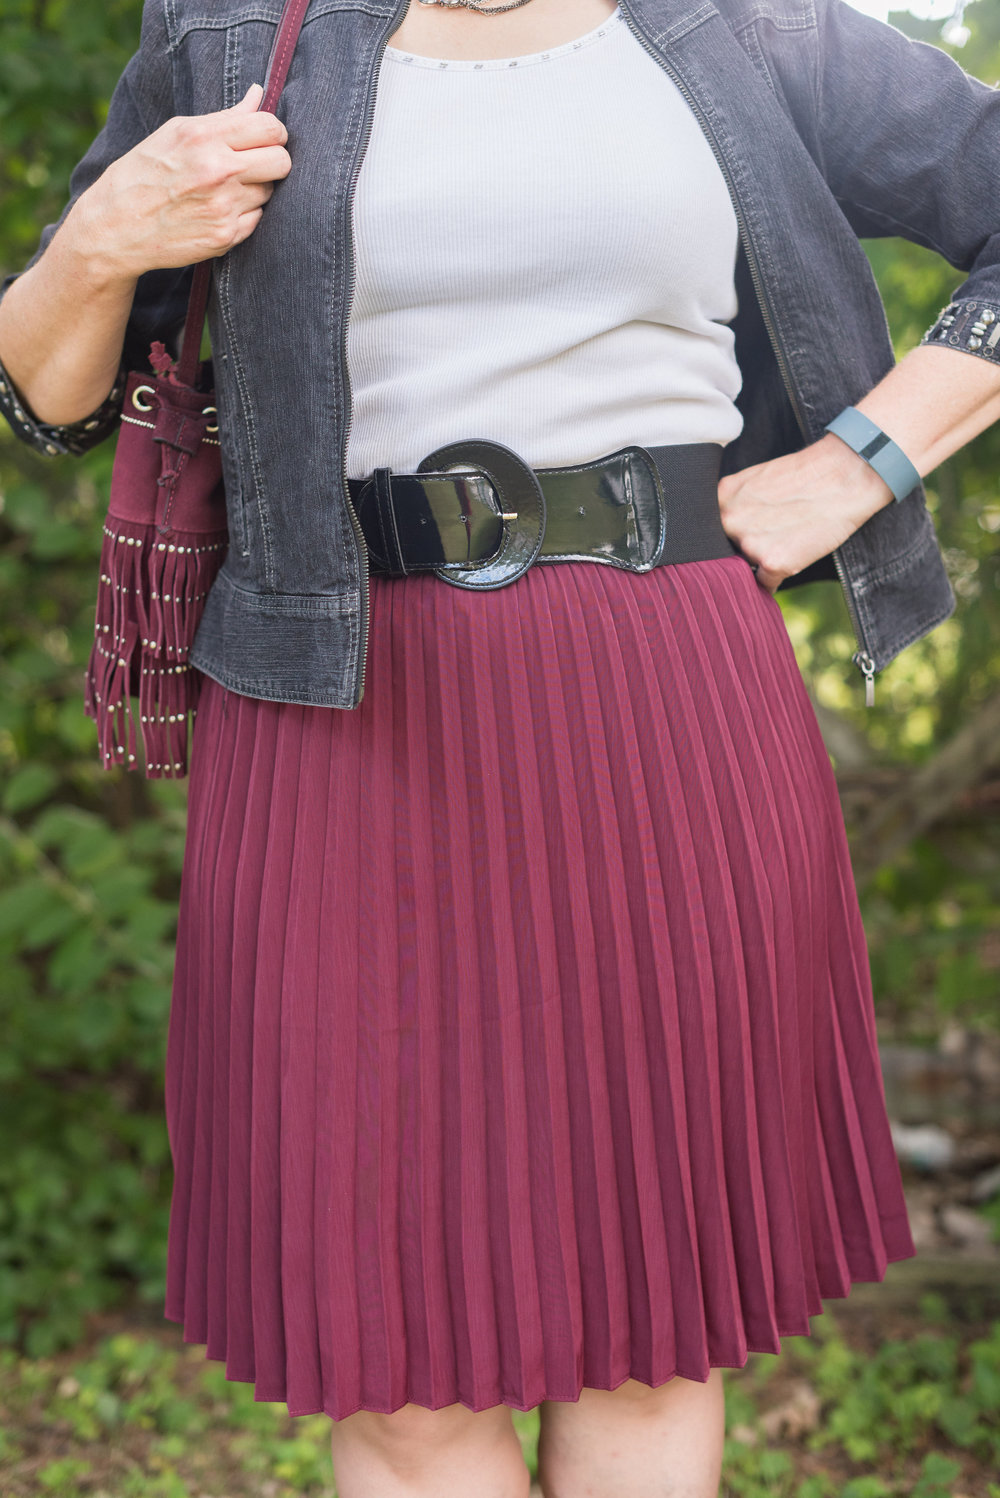 gray-maroon outfit